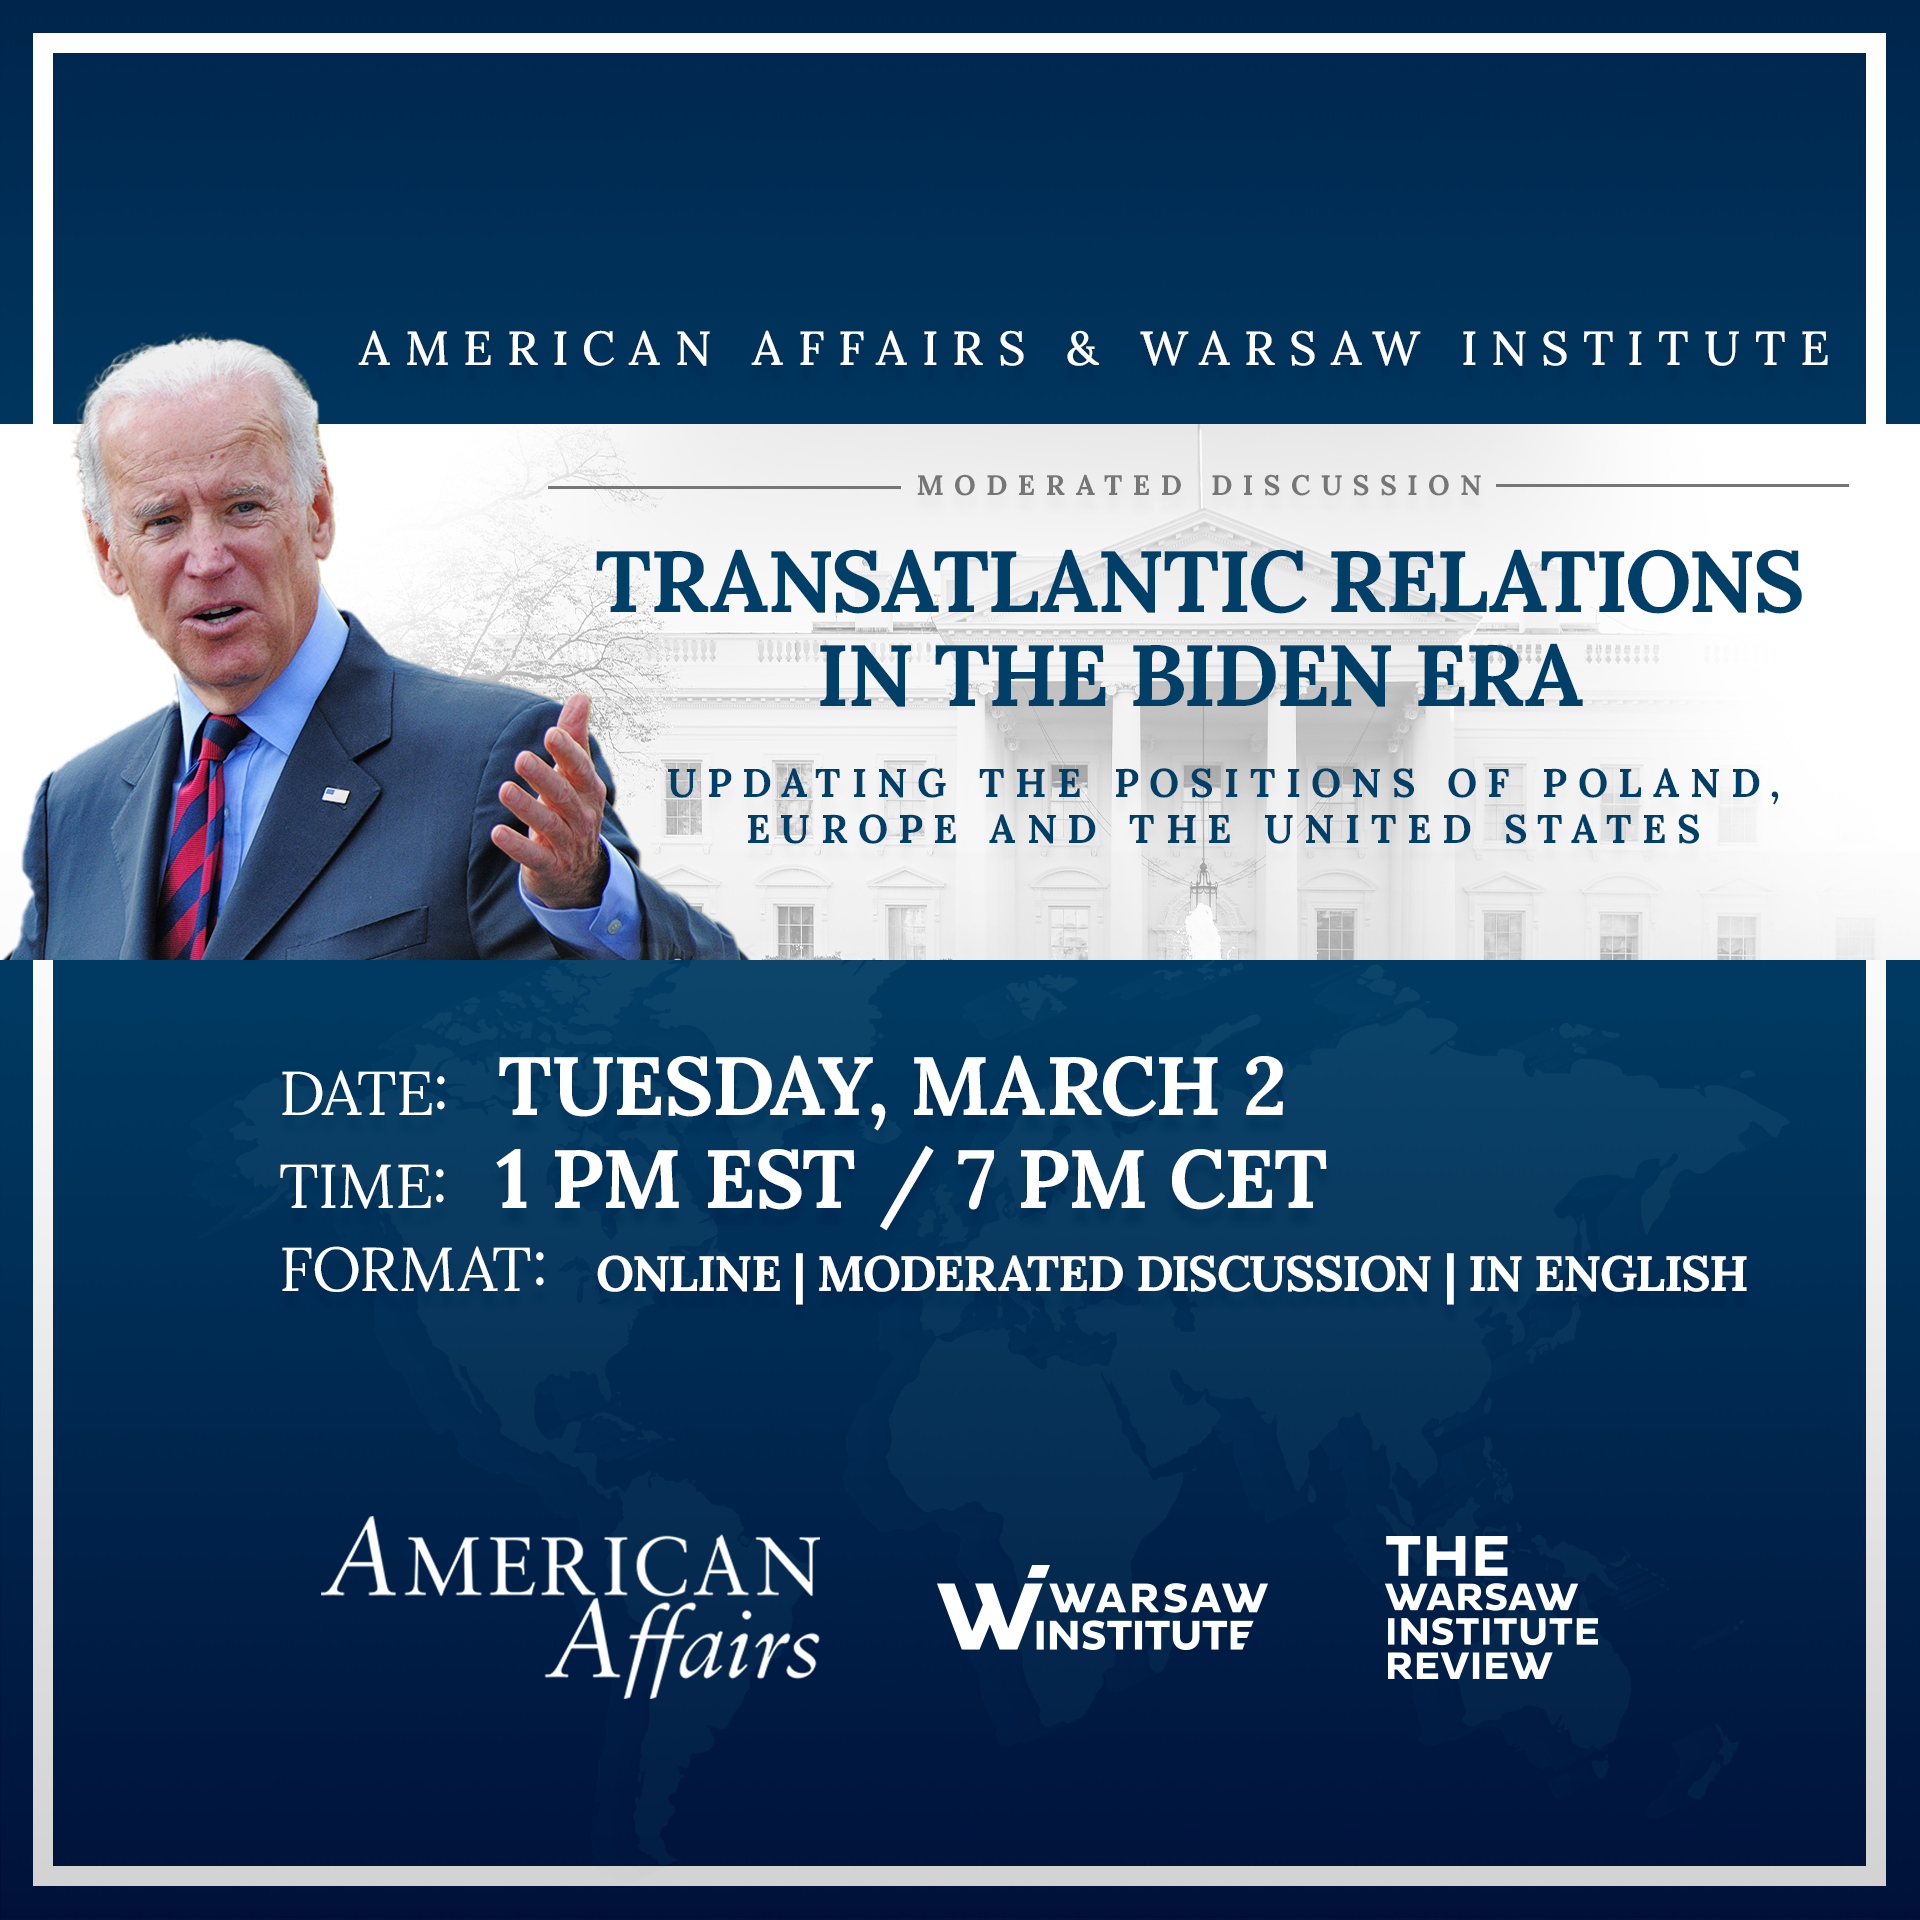 Transatlantic Relations in the Biden Era